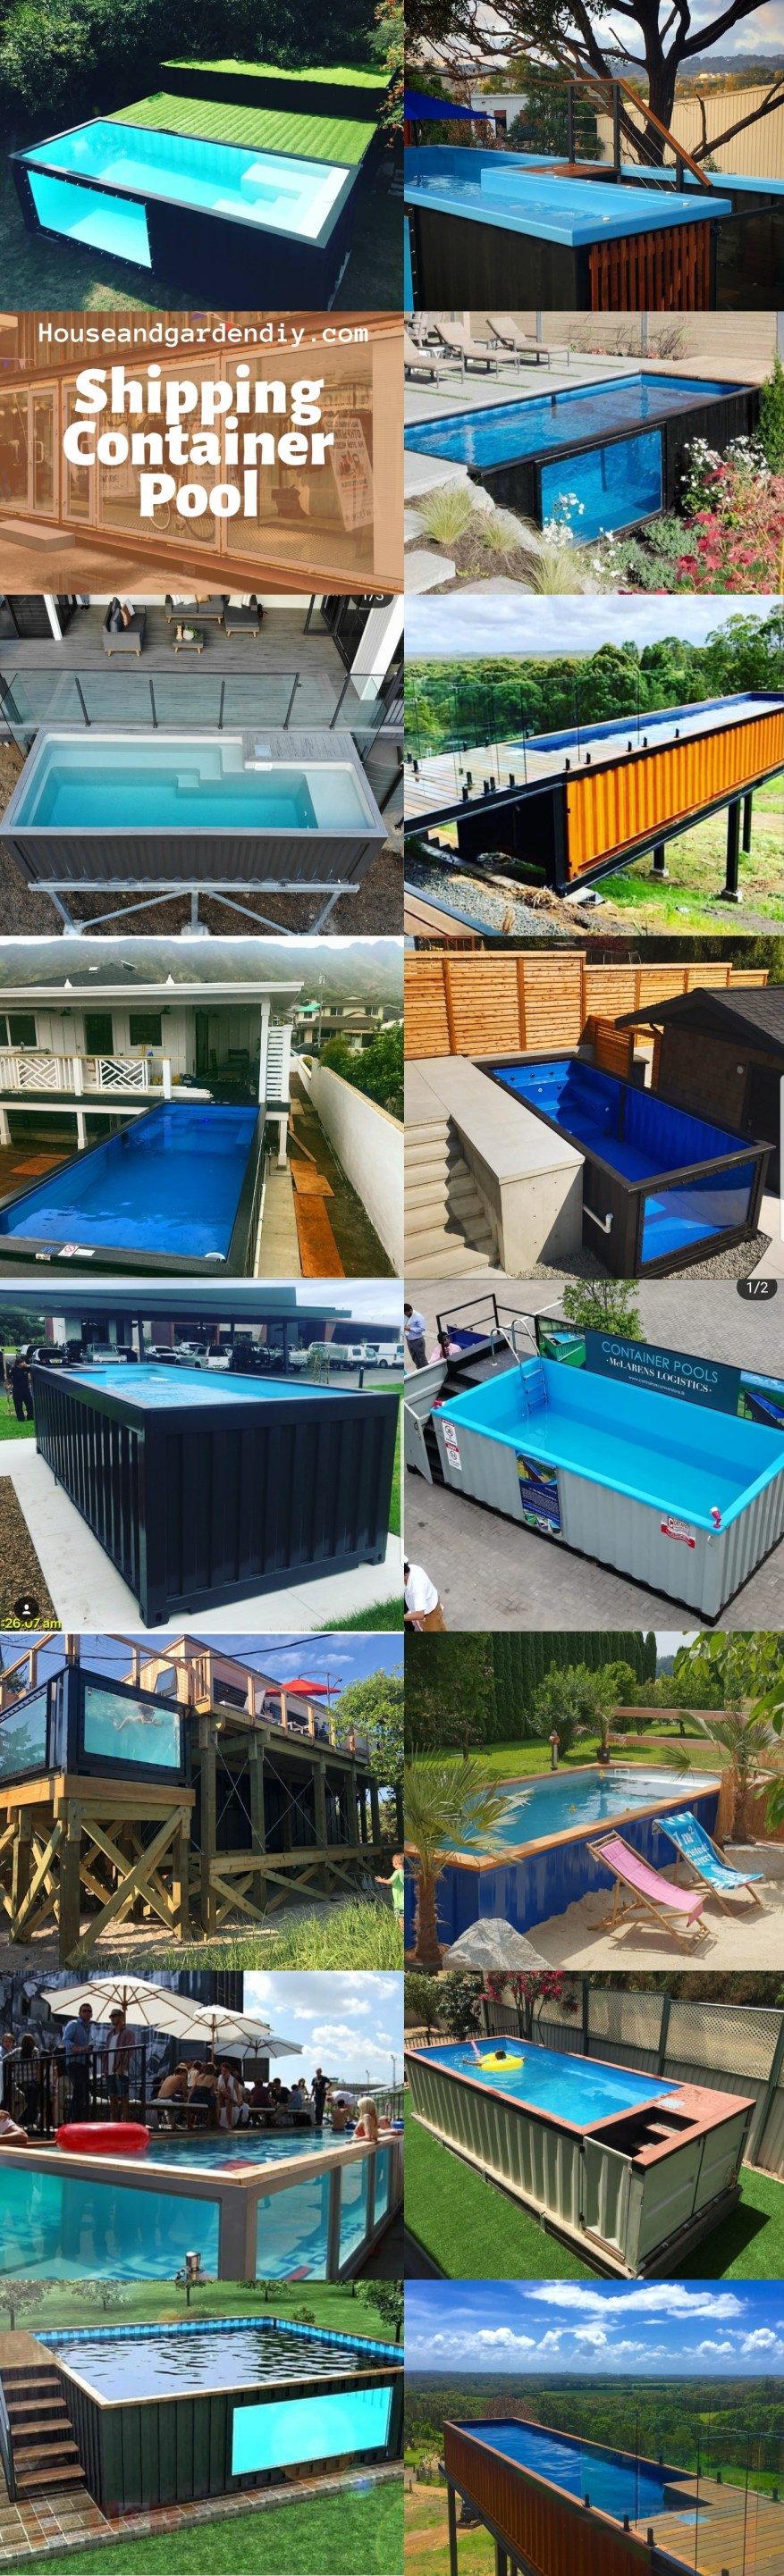 Shipping Container Pool Ideas